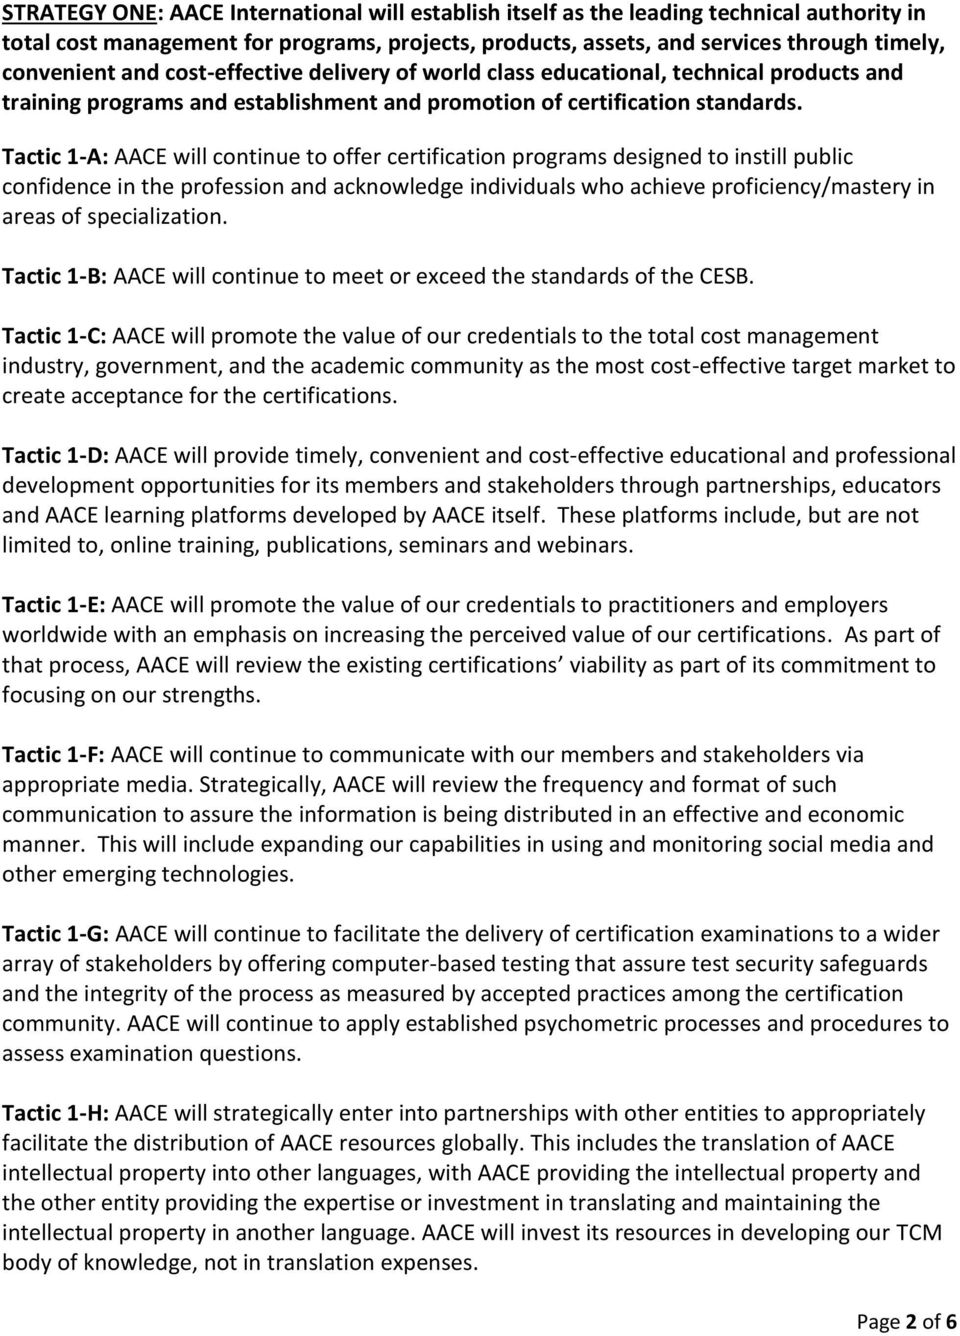 Tactic 1-A: AACE will continue to offer certification programs designed to instill public confidence in the profession and acknowledge individuals who achieve proficiency/mastery in areas of